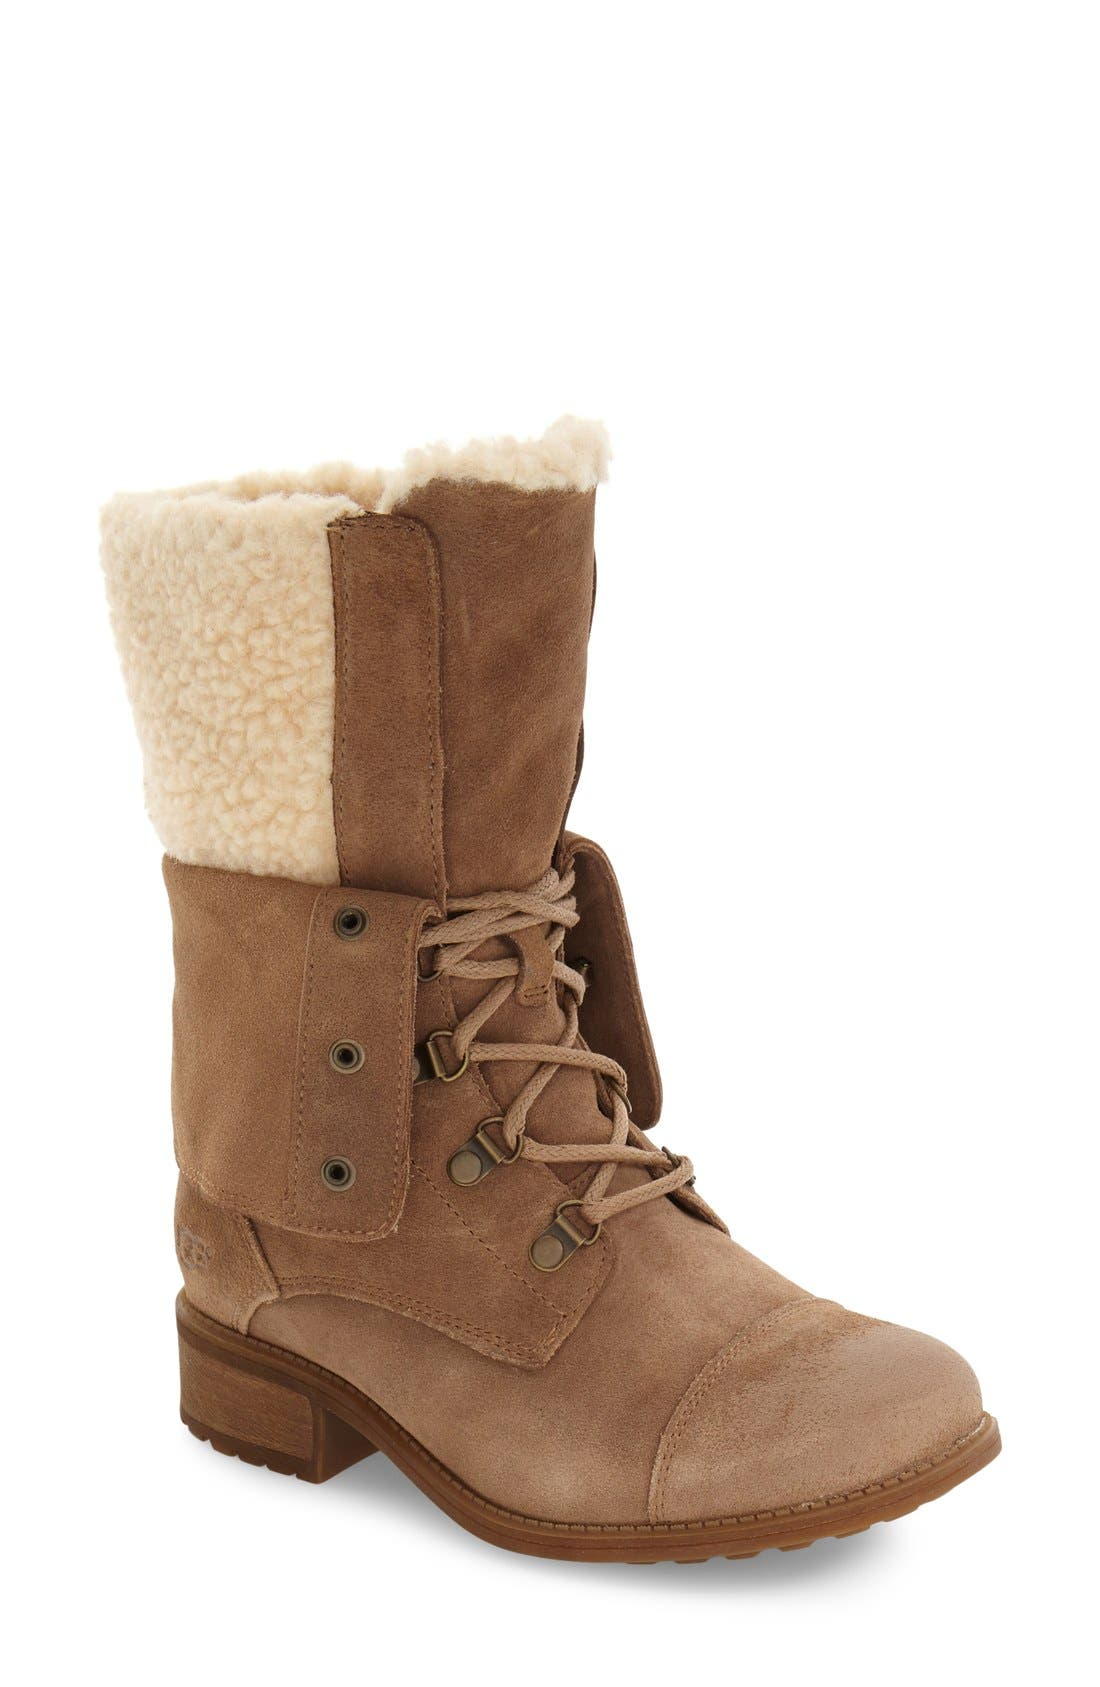 Alternate Image 1 Selected - UGG® Gradin Water Resistant Boot (Women)